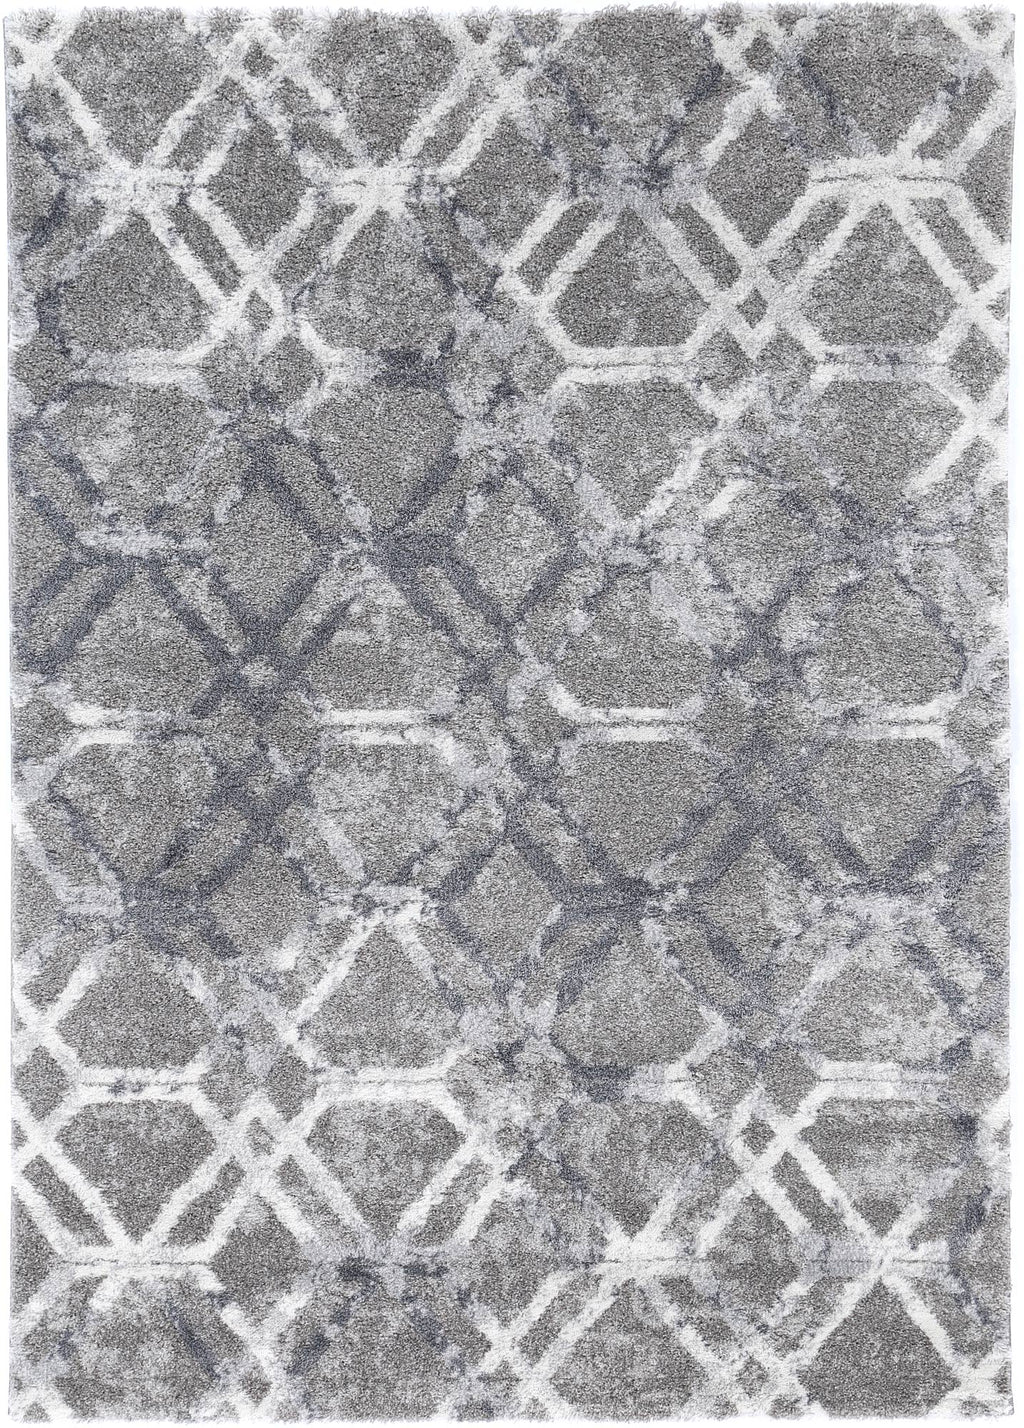 Yuzil Blue Lattice Rug